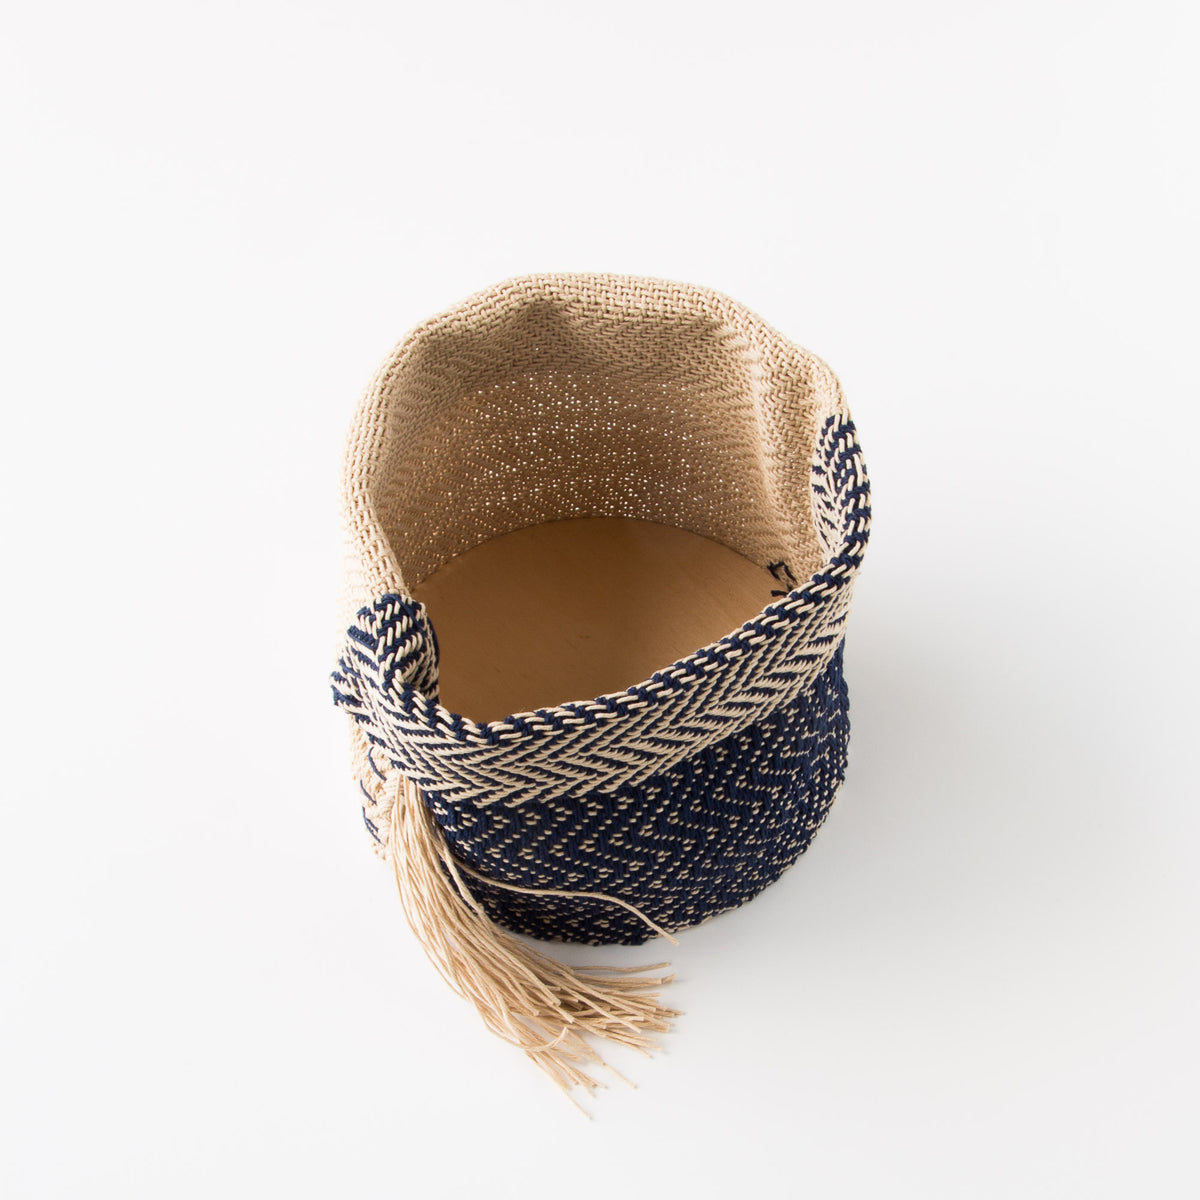 Bottom Wood View - Hemp Table Basket (Medium) - Handwoven in Montreal, Quebec, Canada - Sold by Chic & Basta